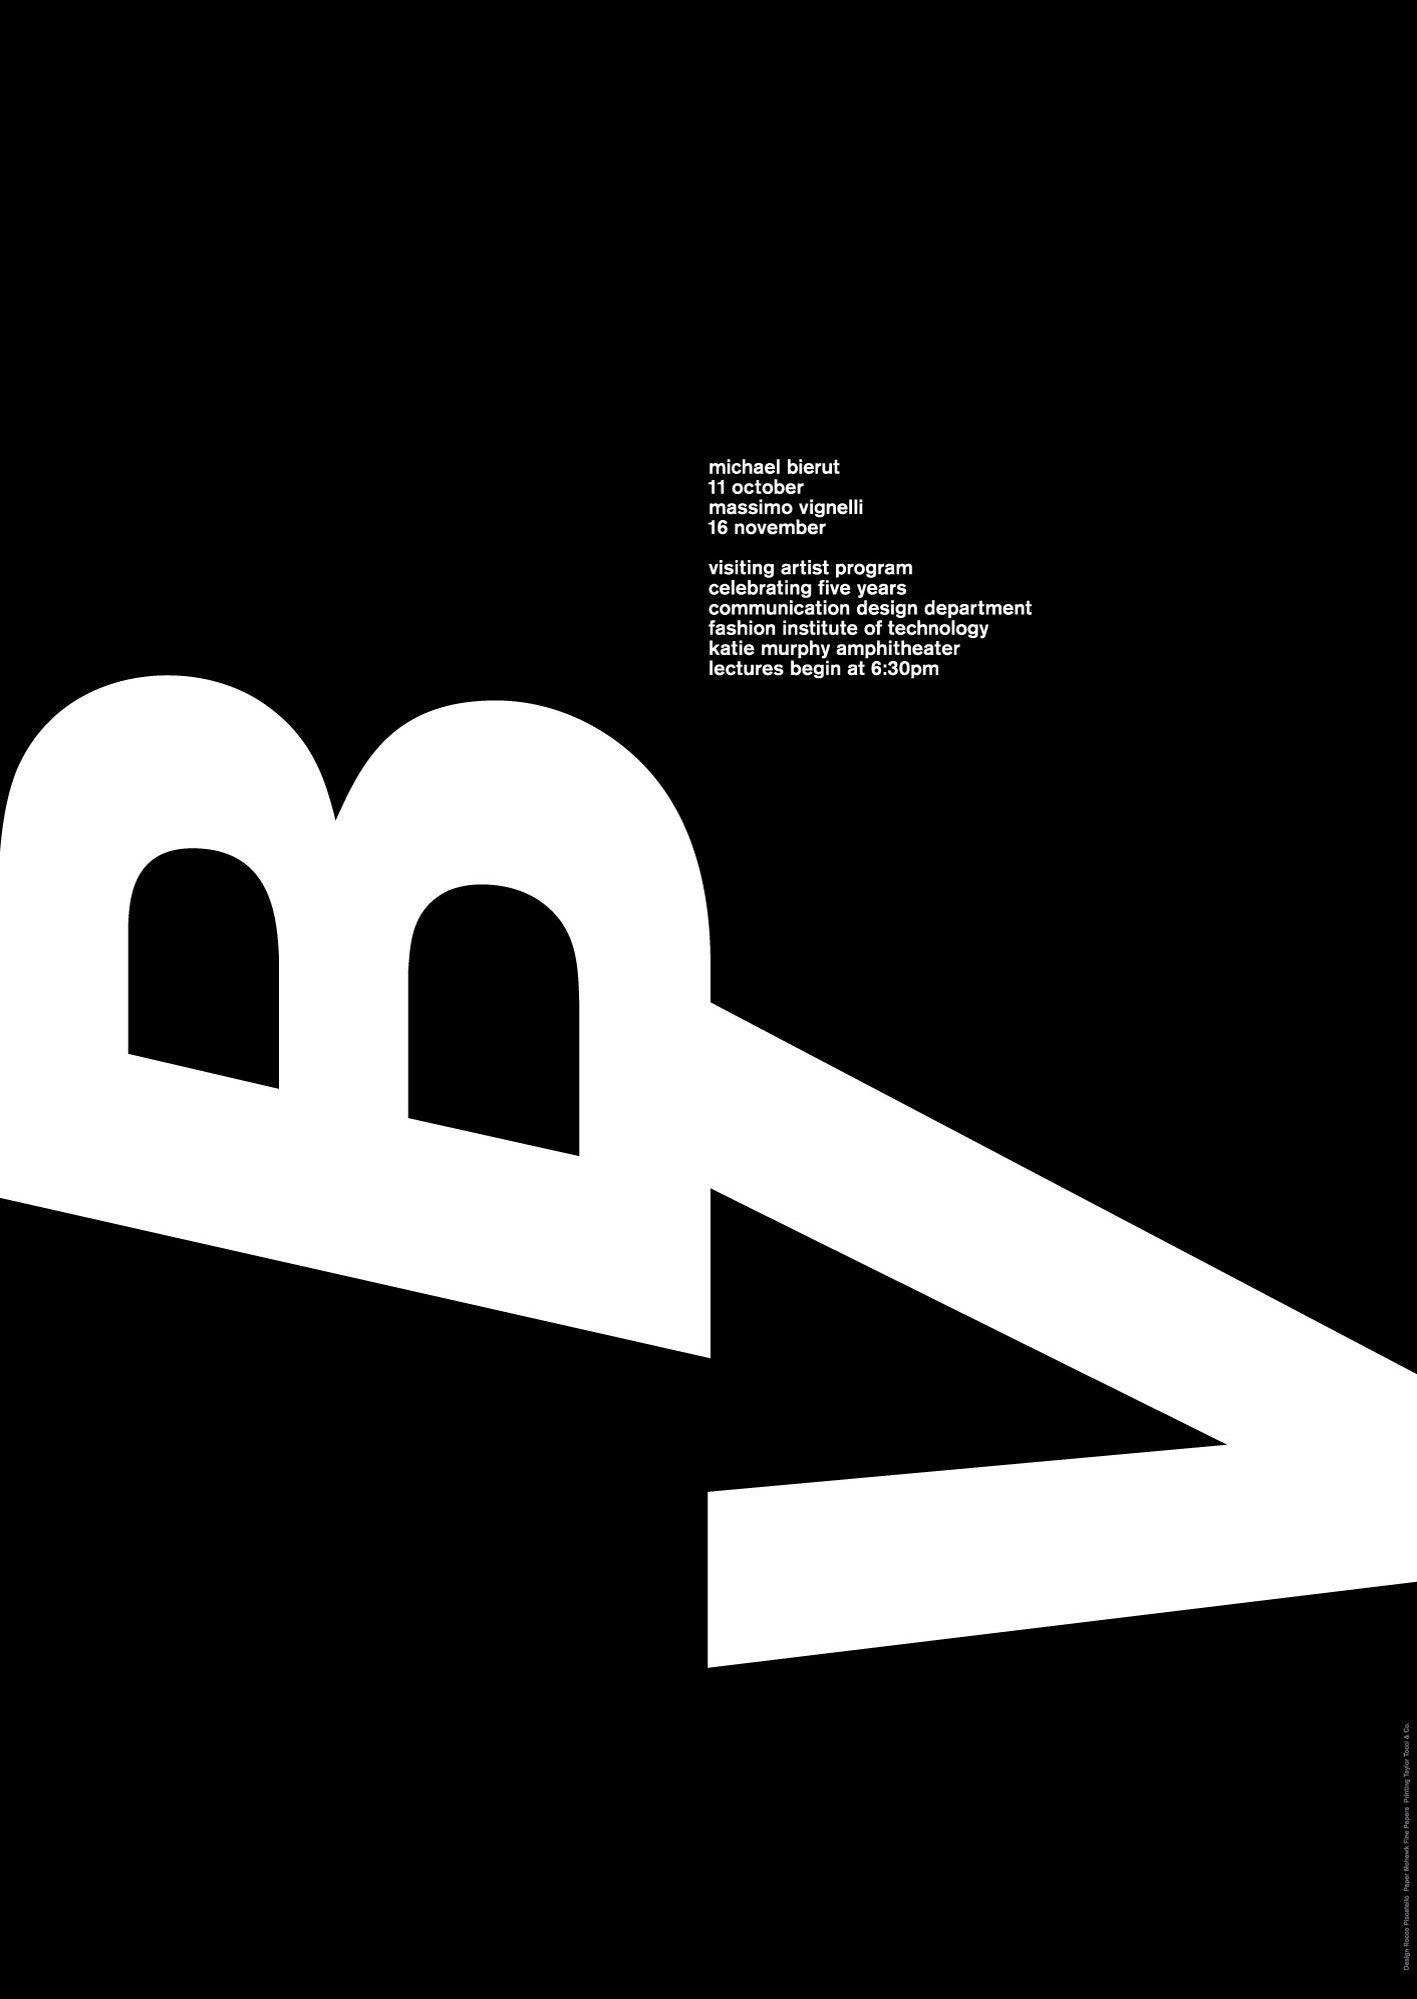 michael bierut 79 essays Michael bierut born in cleveland in 1957 and educated at the university of cincinnati's college of design, architecture, art and planning, michael bierut began his.